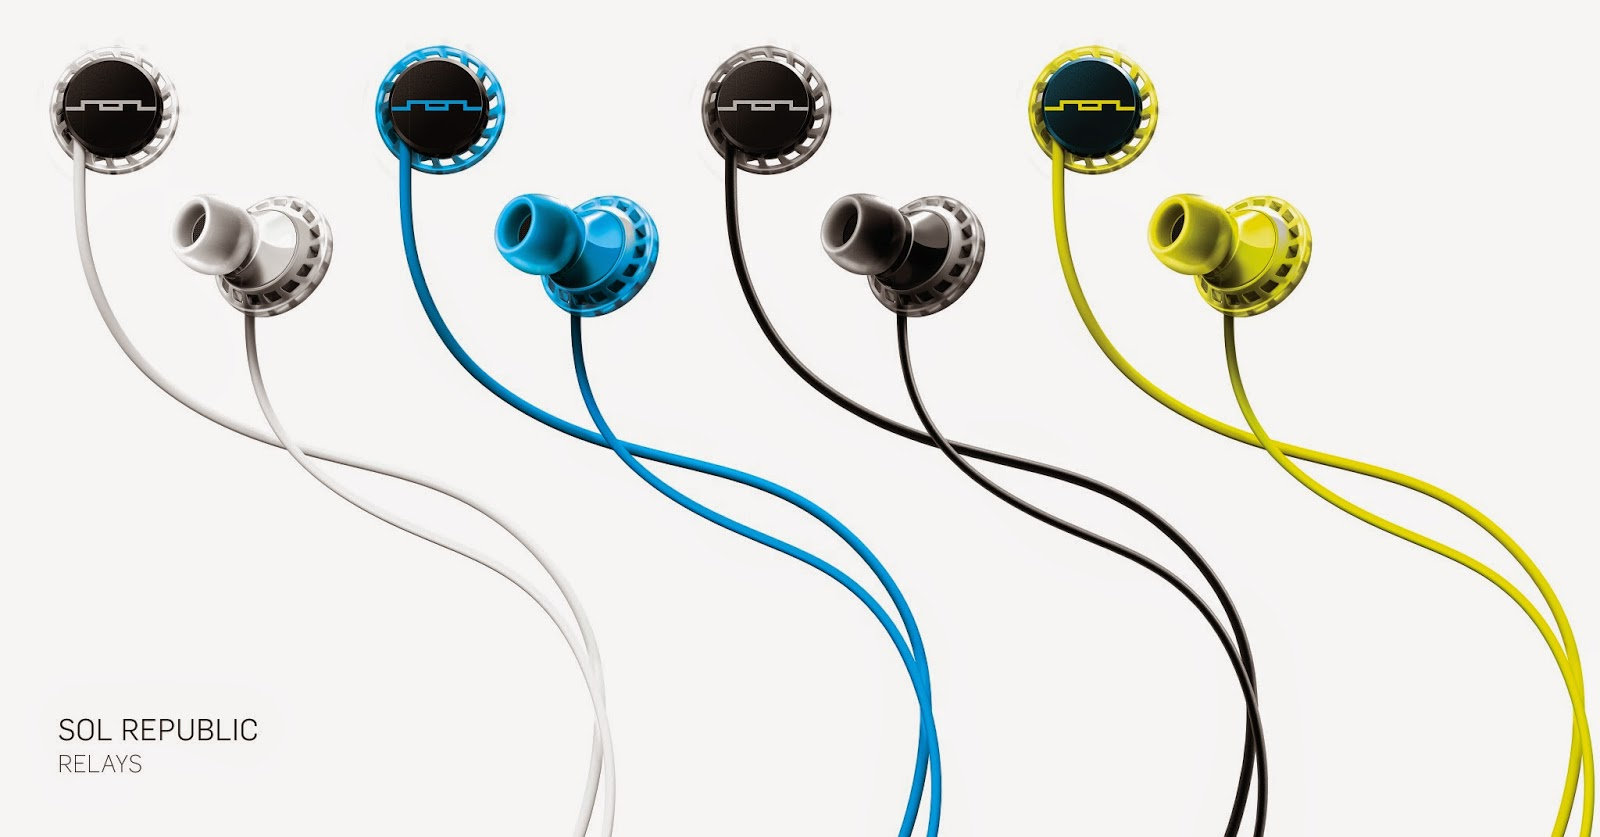 Verizon Sol Republic Relays Headphones